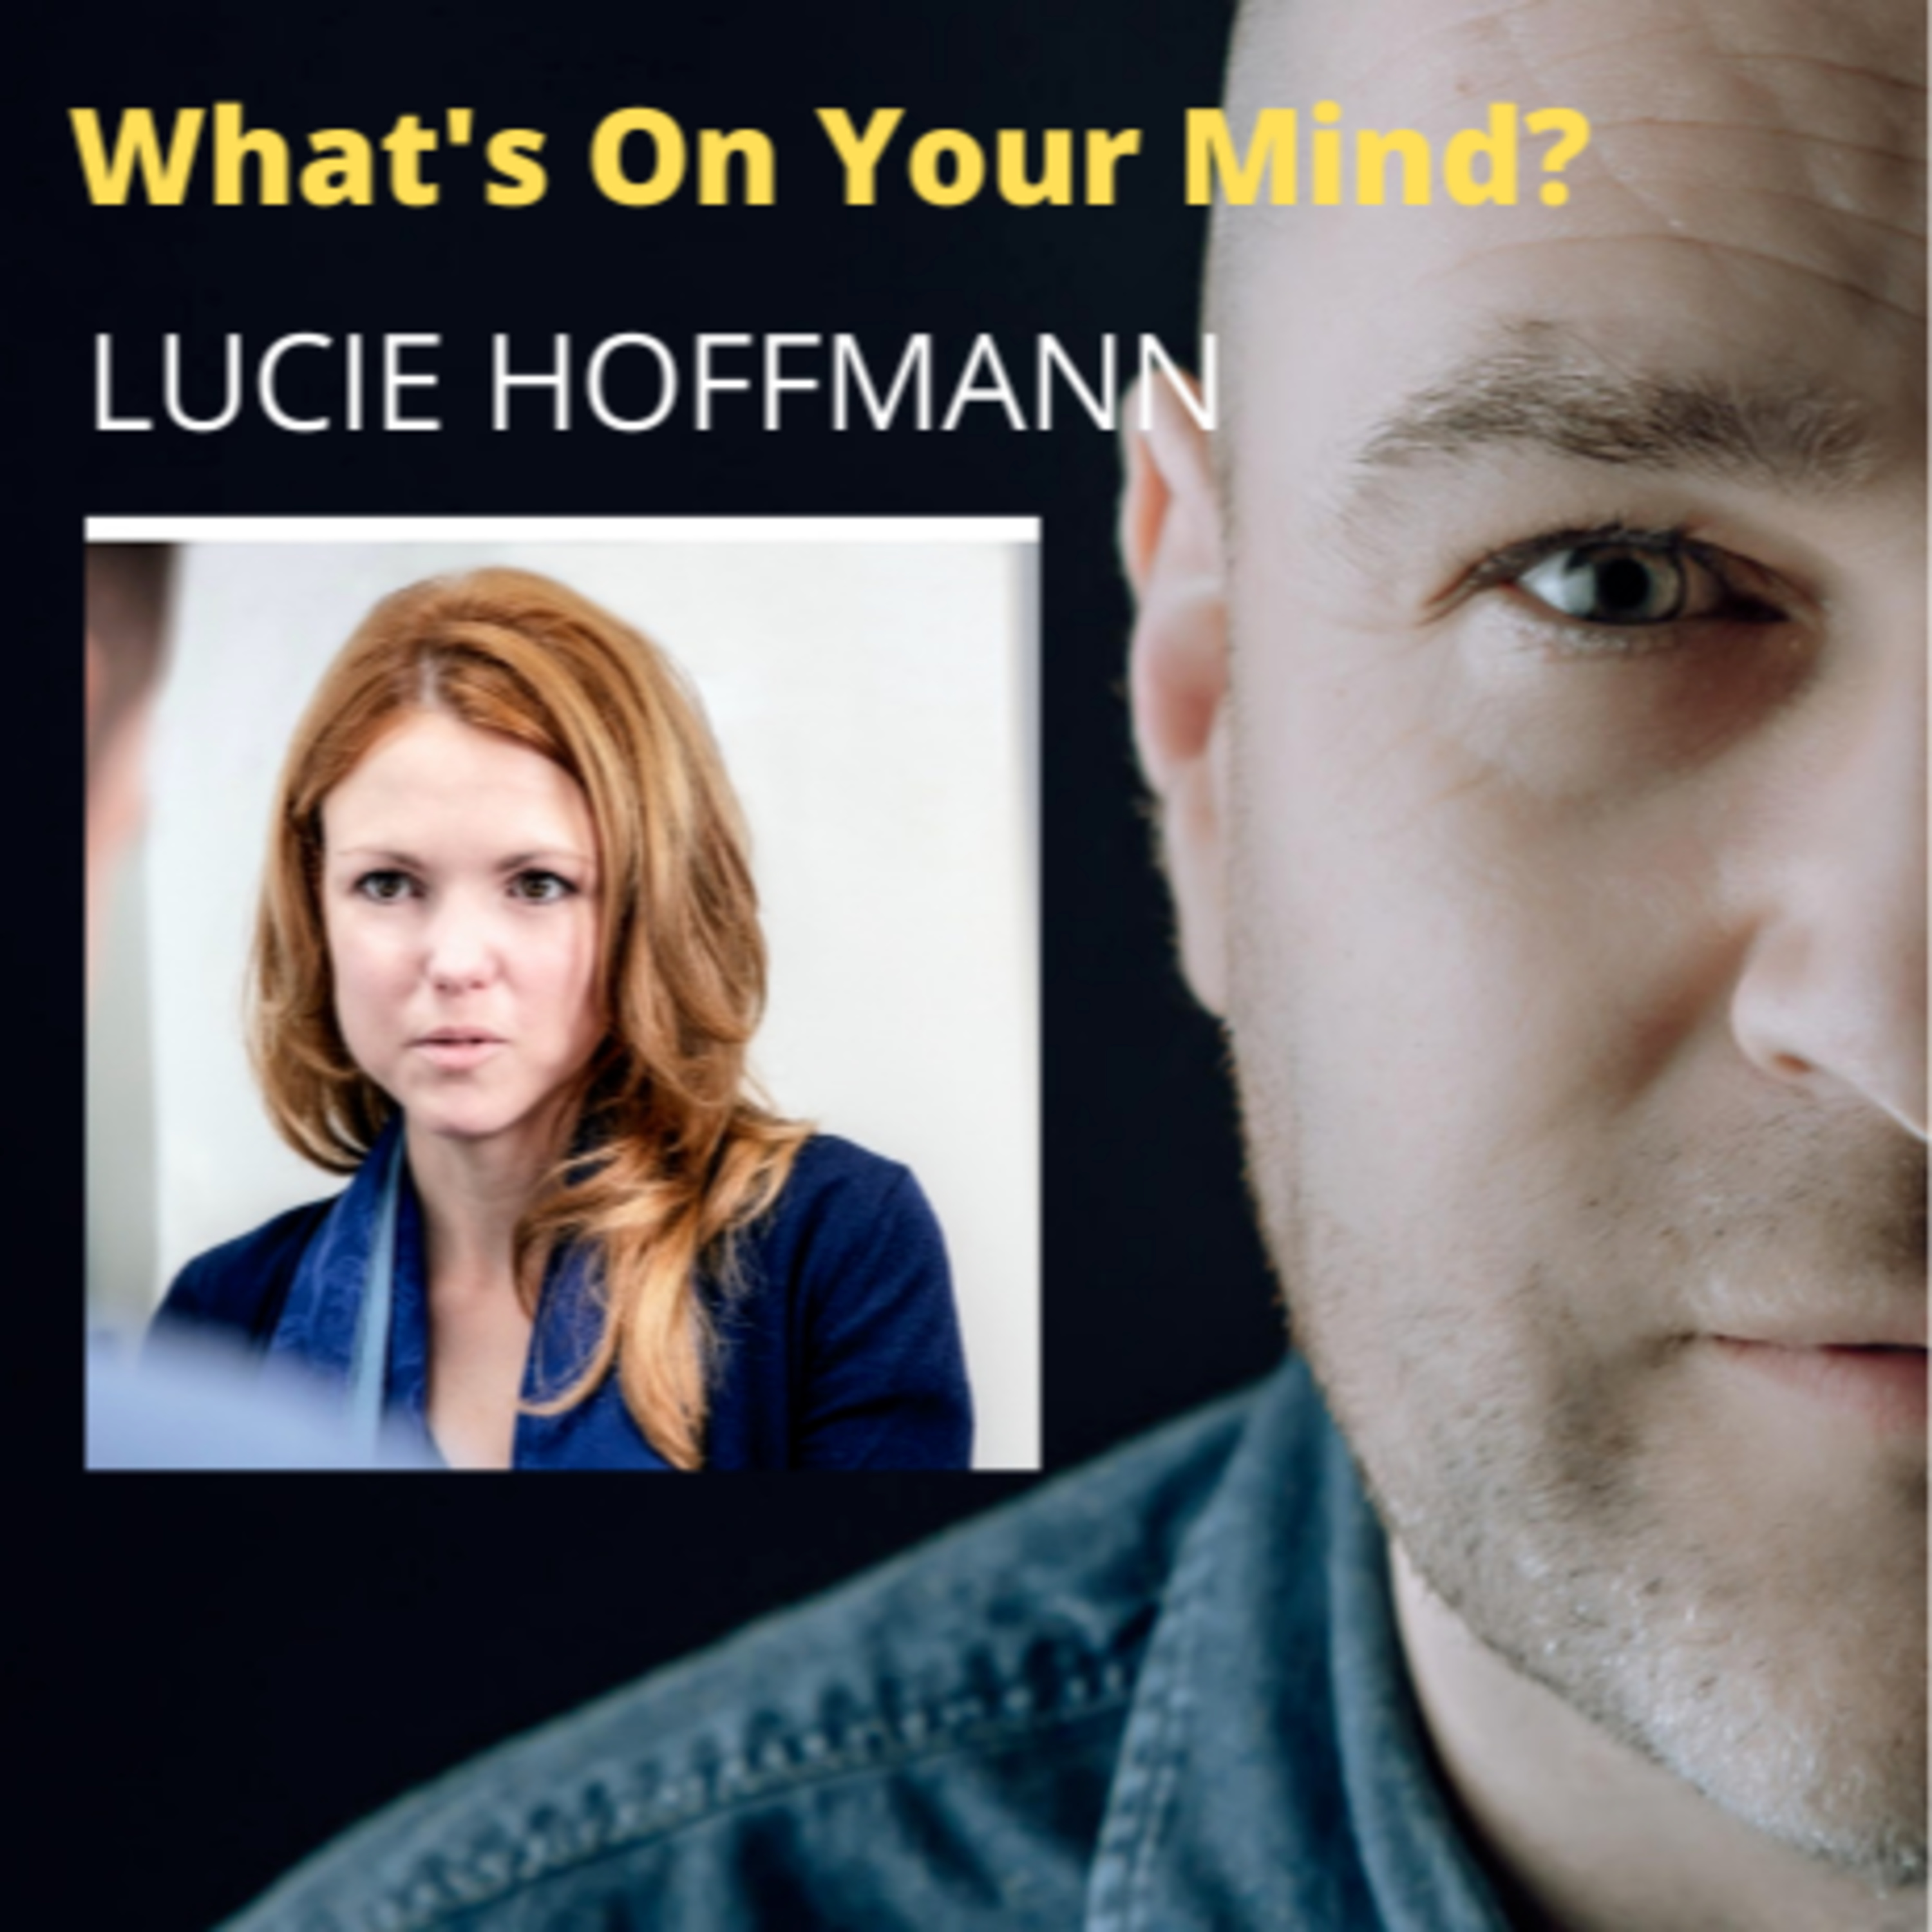 What's On Your Mind 38: Lucie Hoffmann